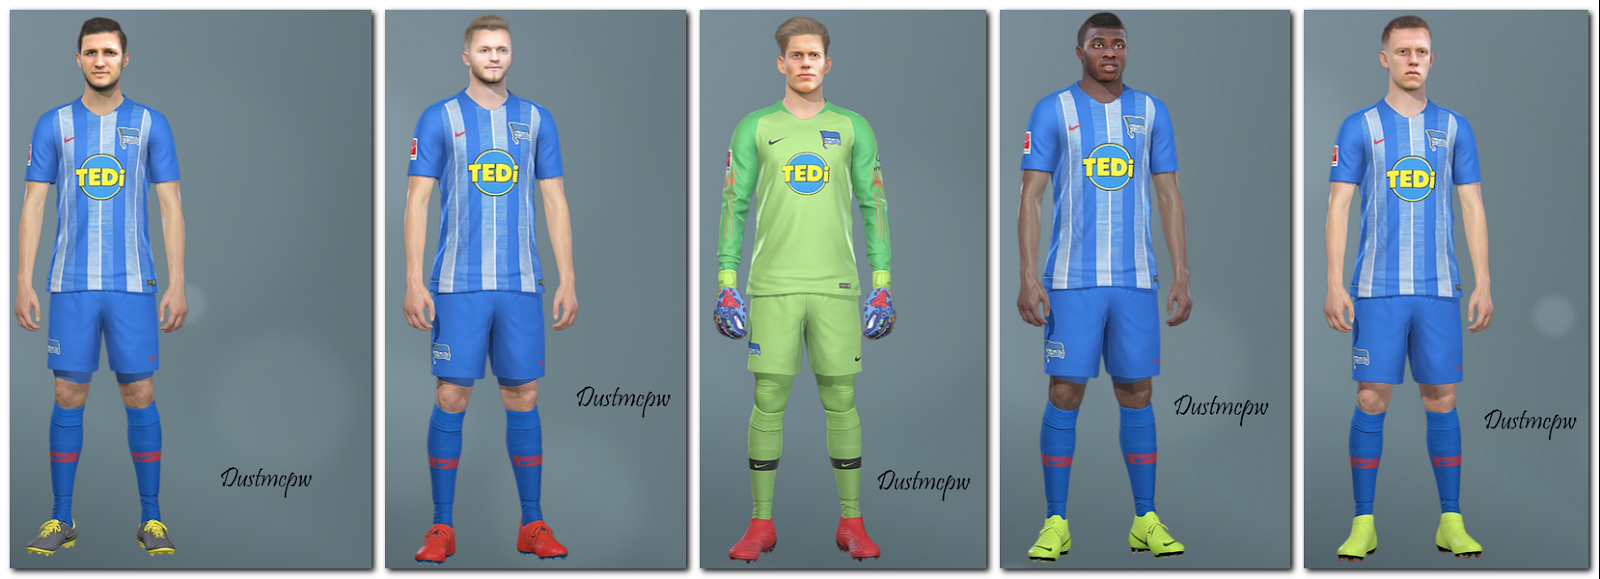 PES 2019 Mini Face Herta Berlin by Dustmcpw